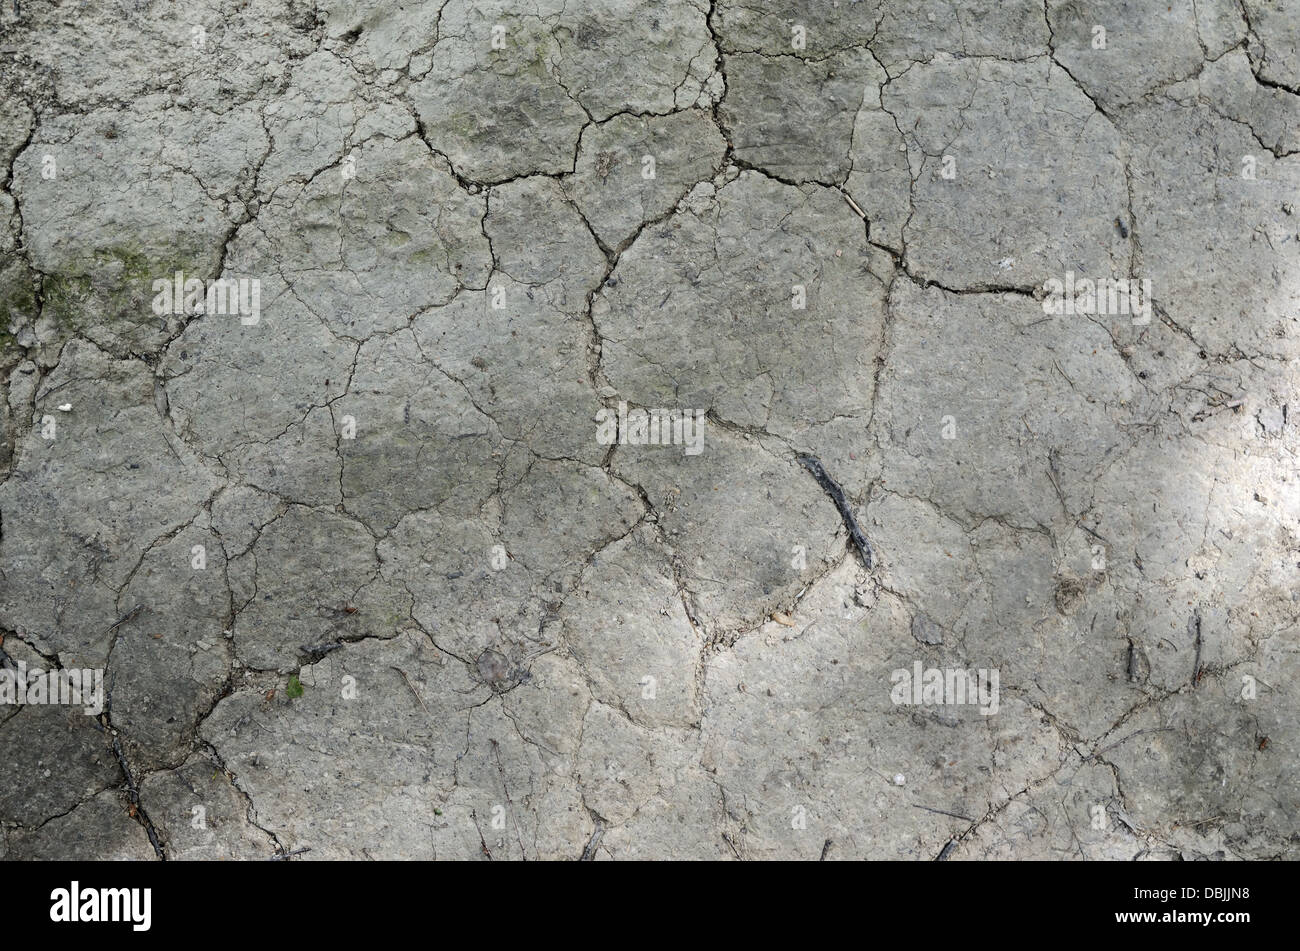 cracked clay gray surface with a spot of sunshine - Stock Image